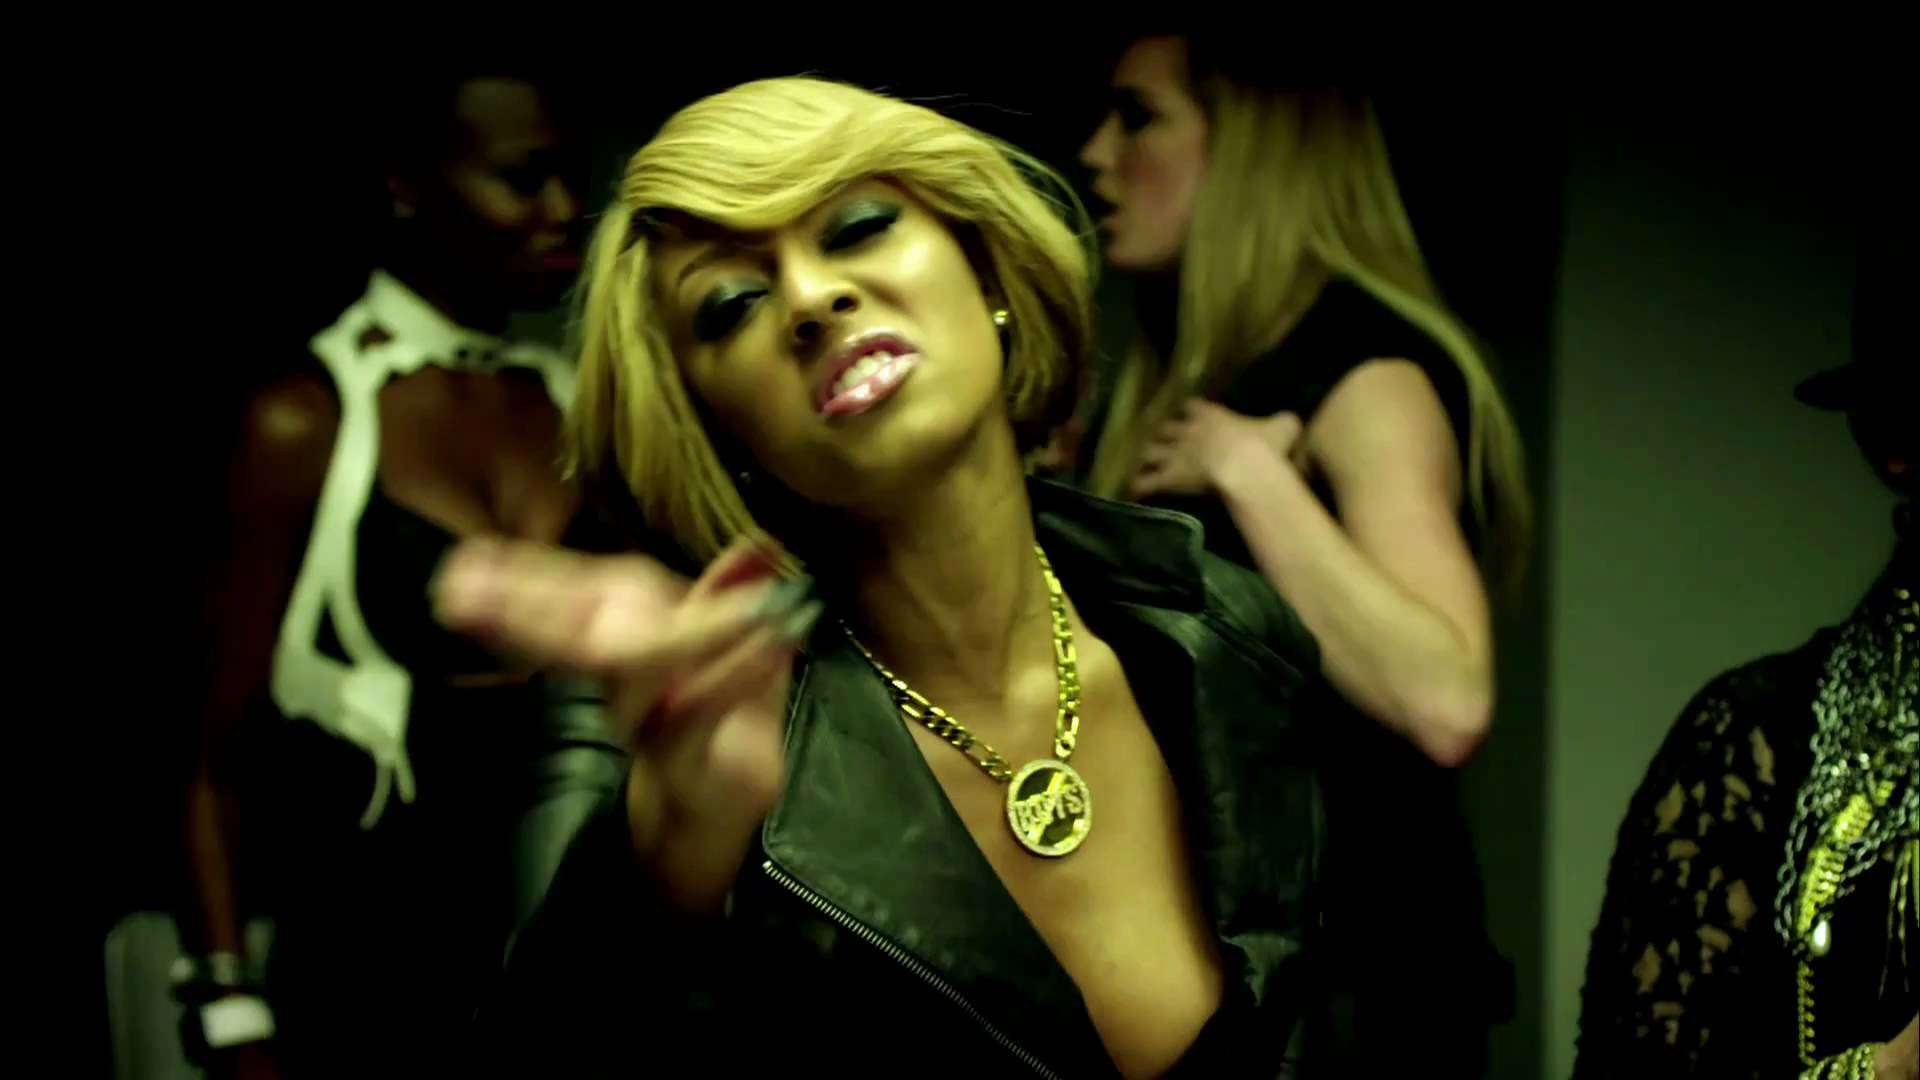 Keri Hilson ft. Rick Ross - The Way You Love Me-HD.mpeg - YouTube